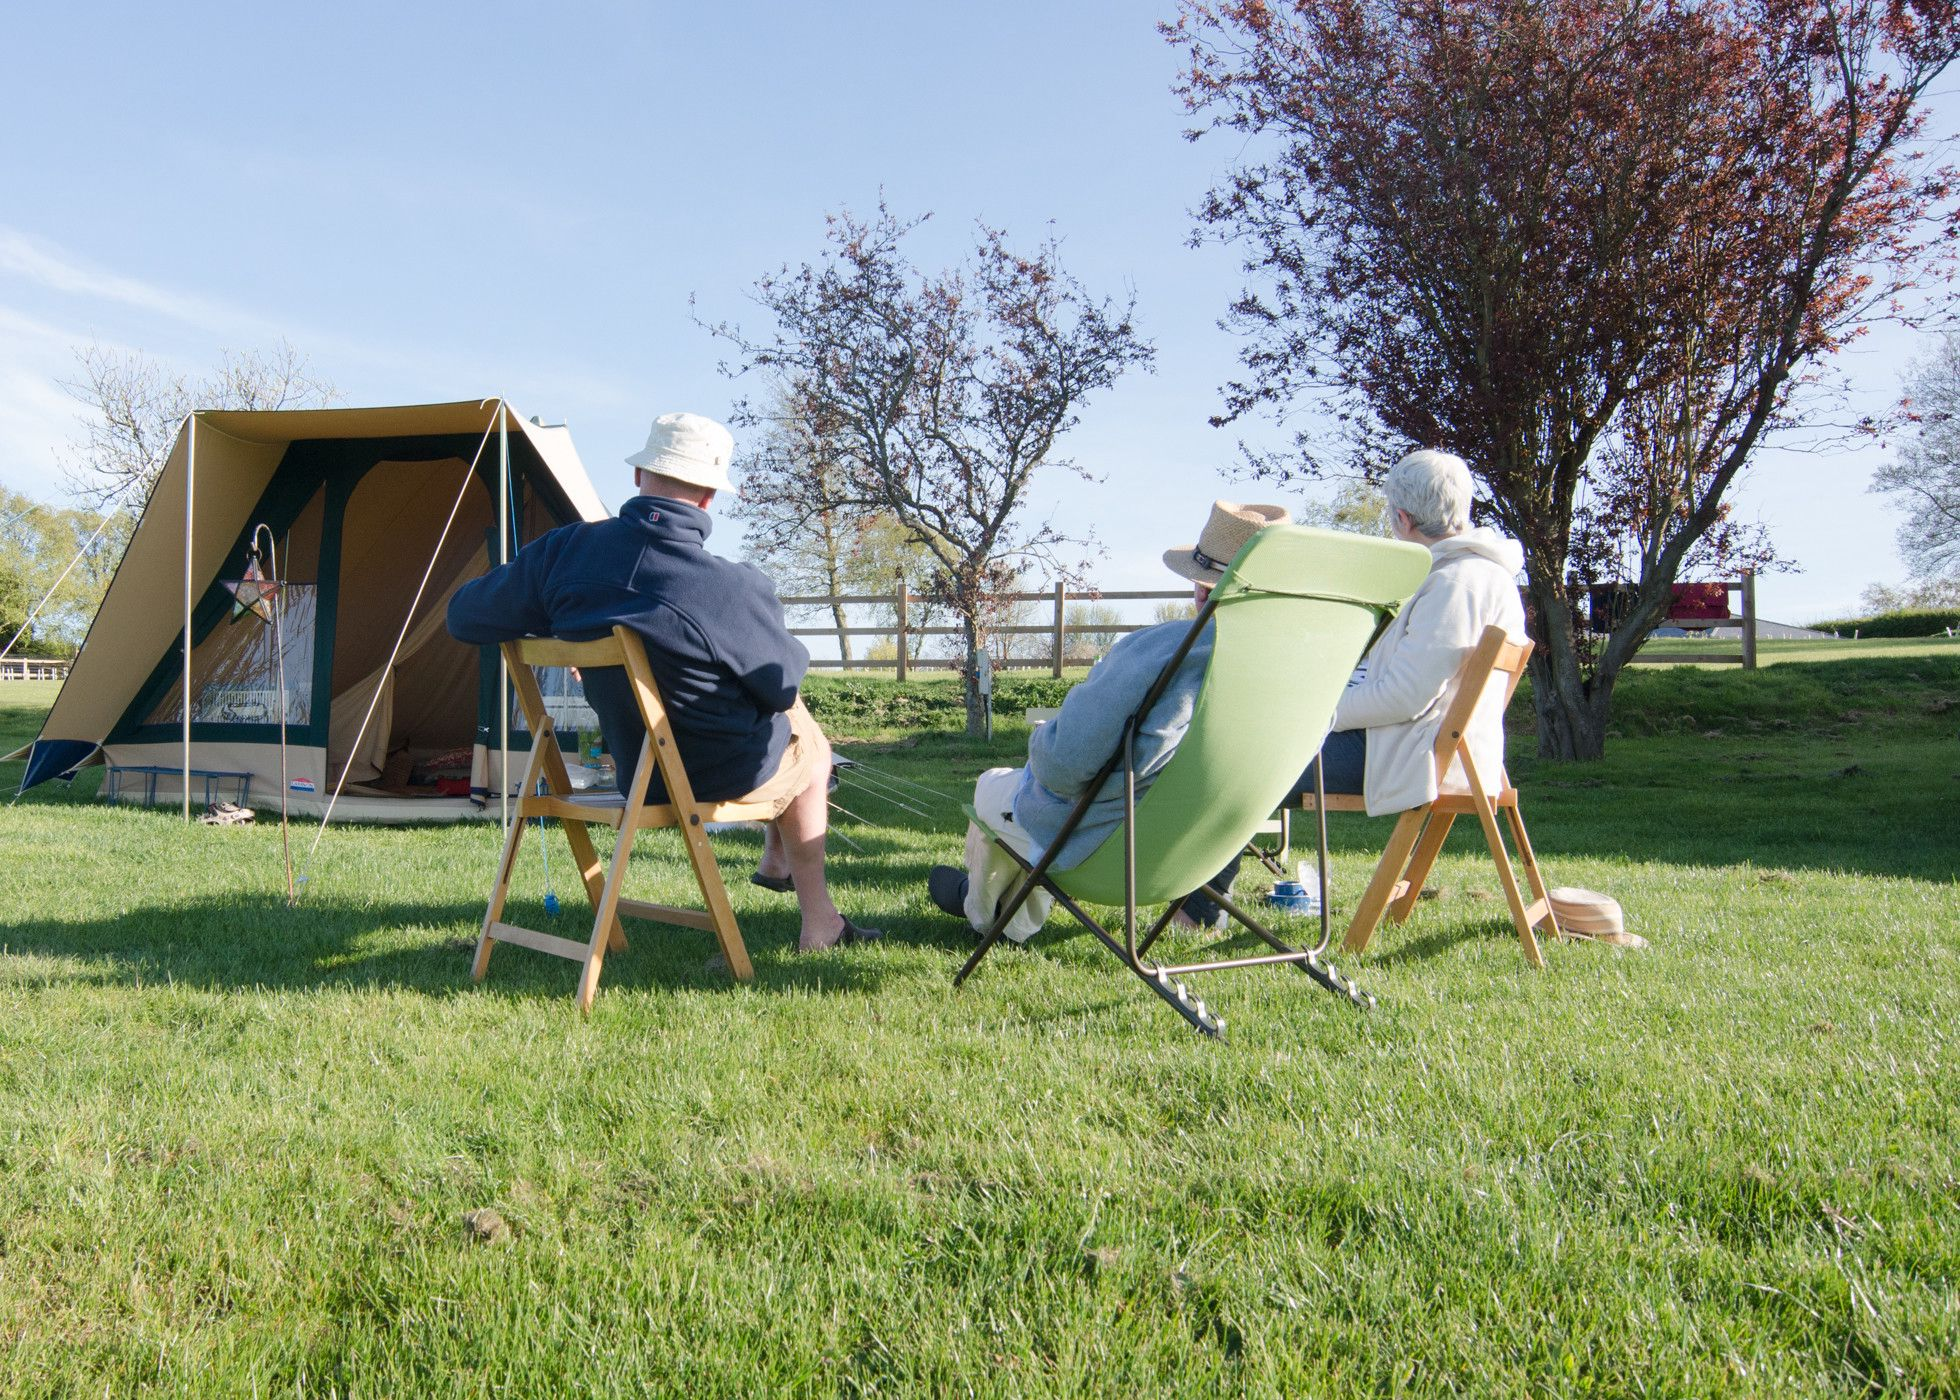 A stunning, family-friendly campsite on the stunning, family-friendly Isle of Wight.